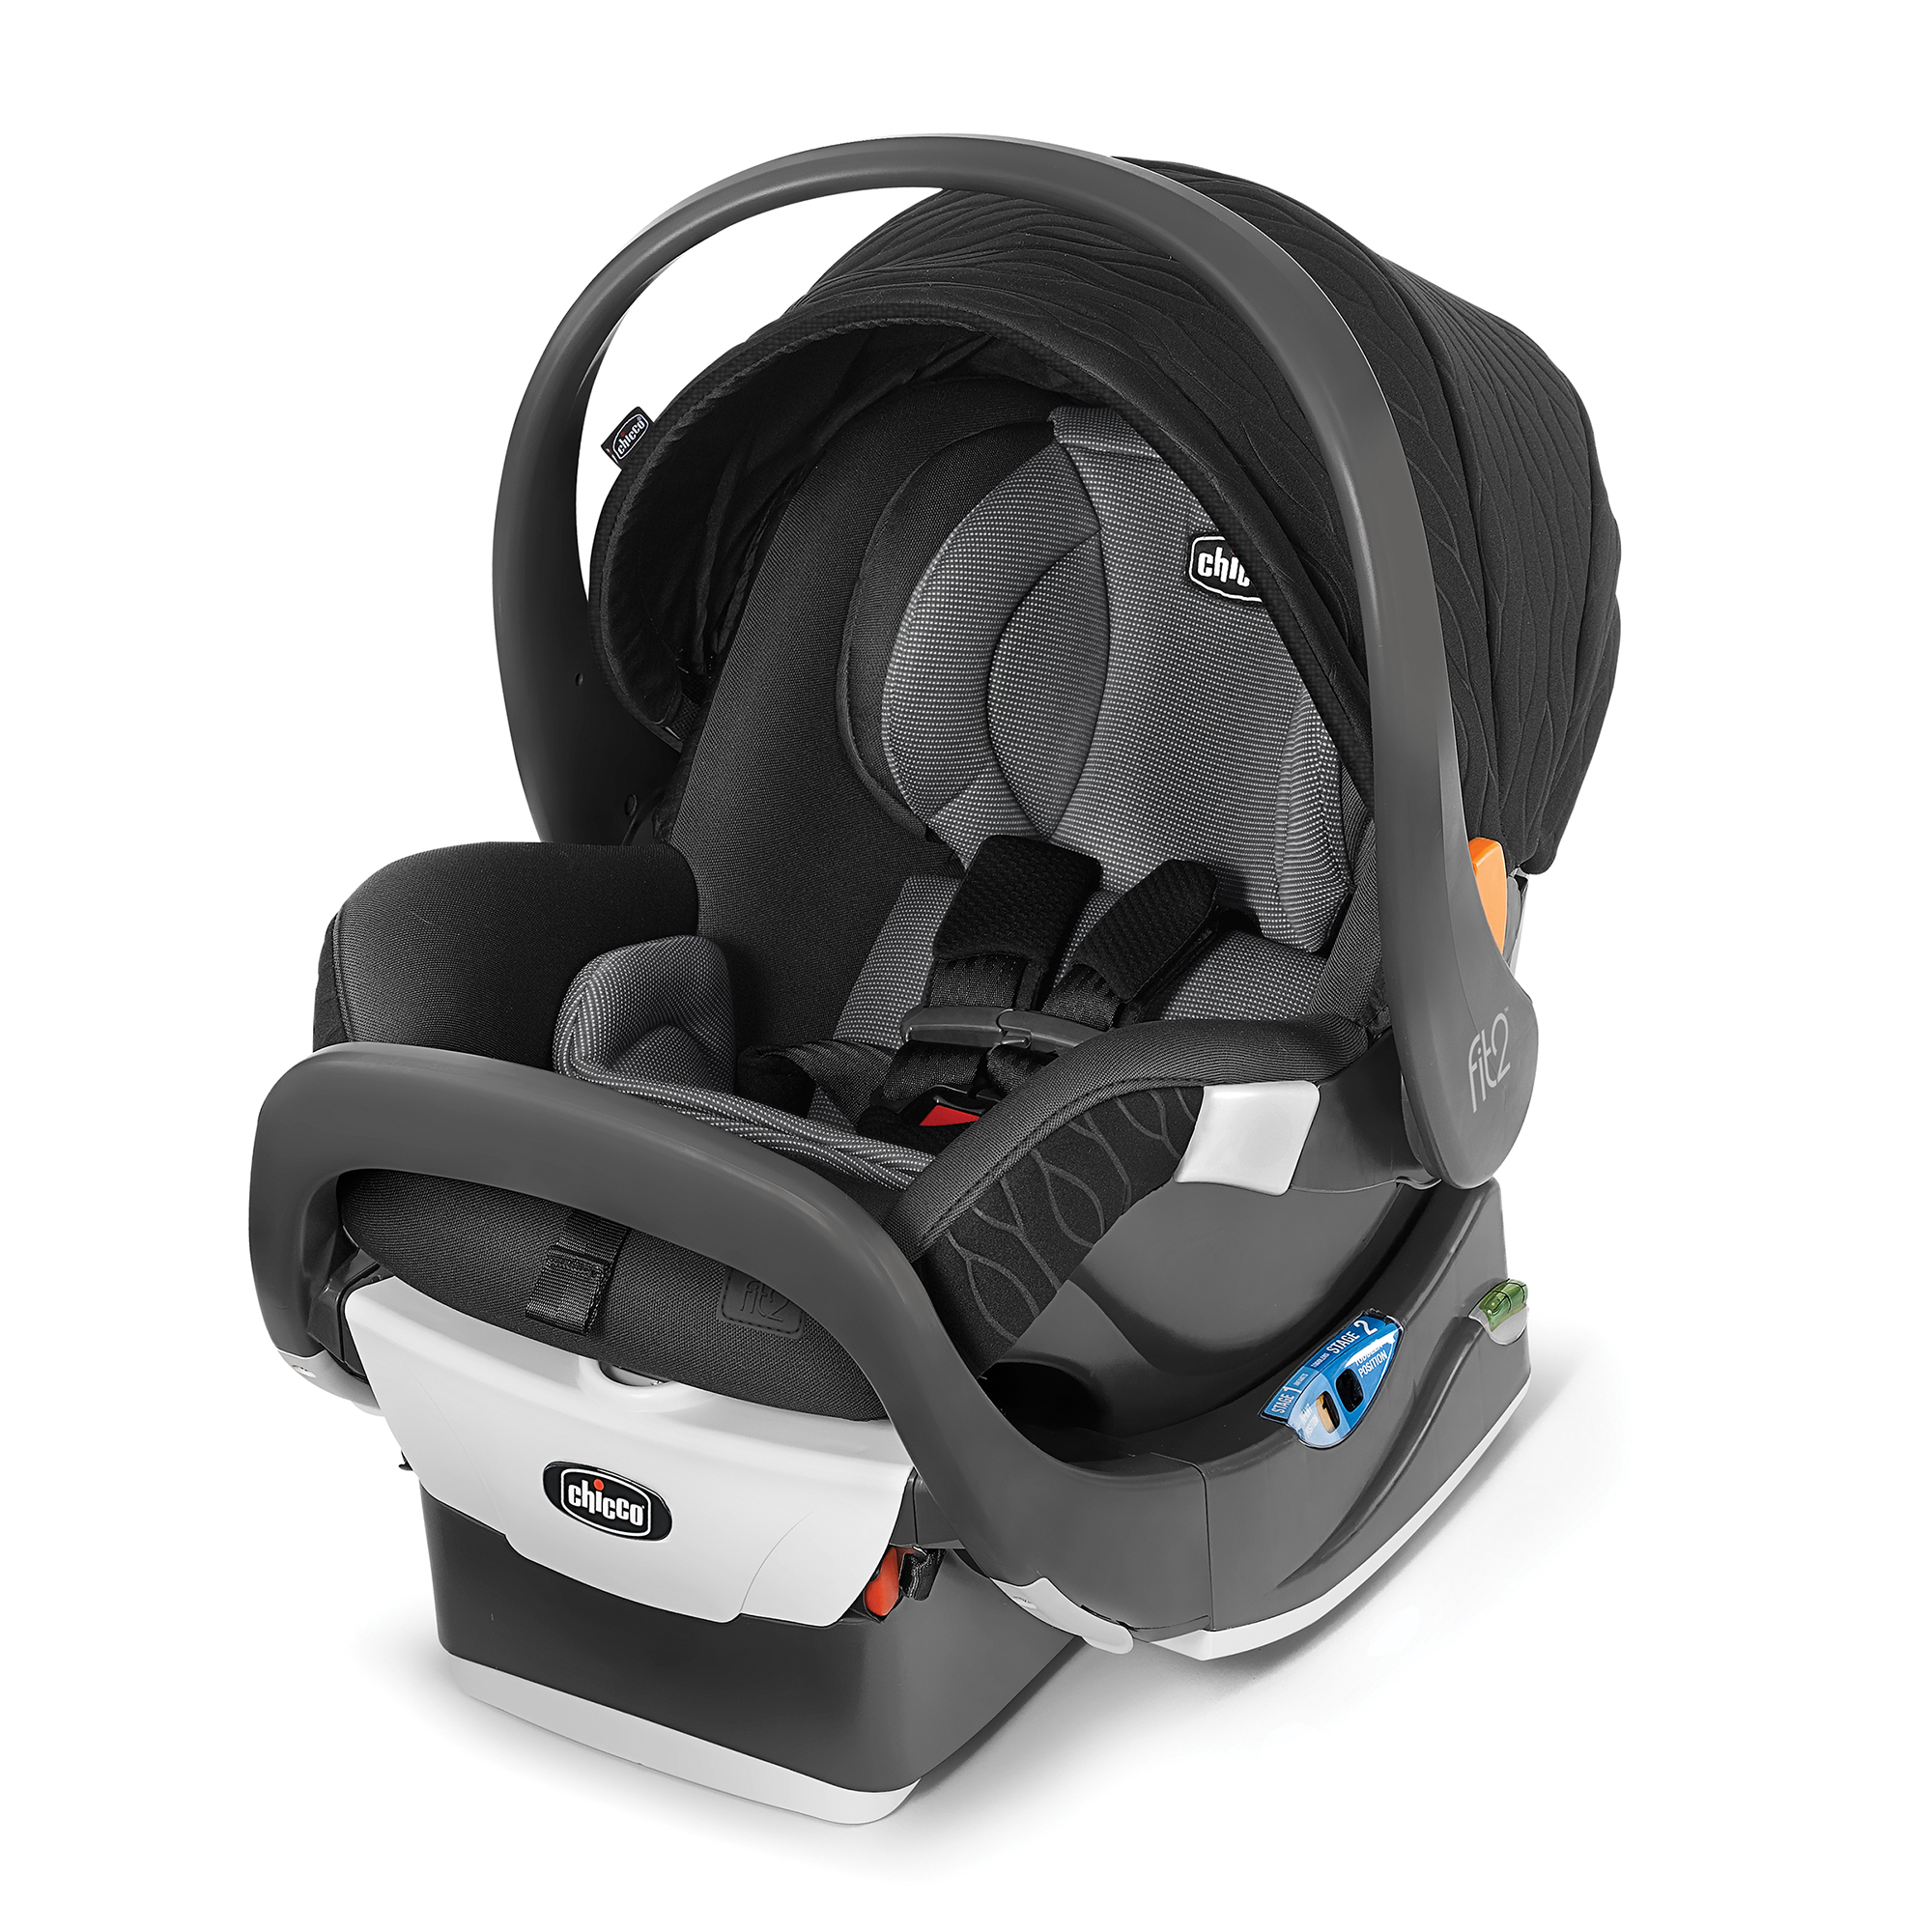 Chicco Fit2 Infant & Toddler Car Seat, Legato by Chicco